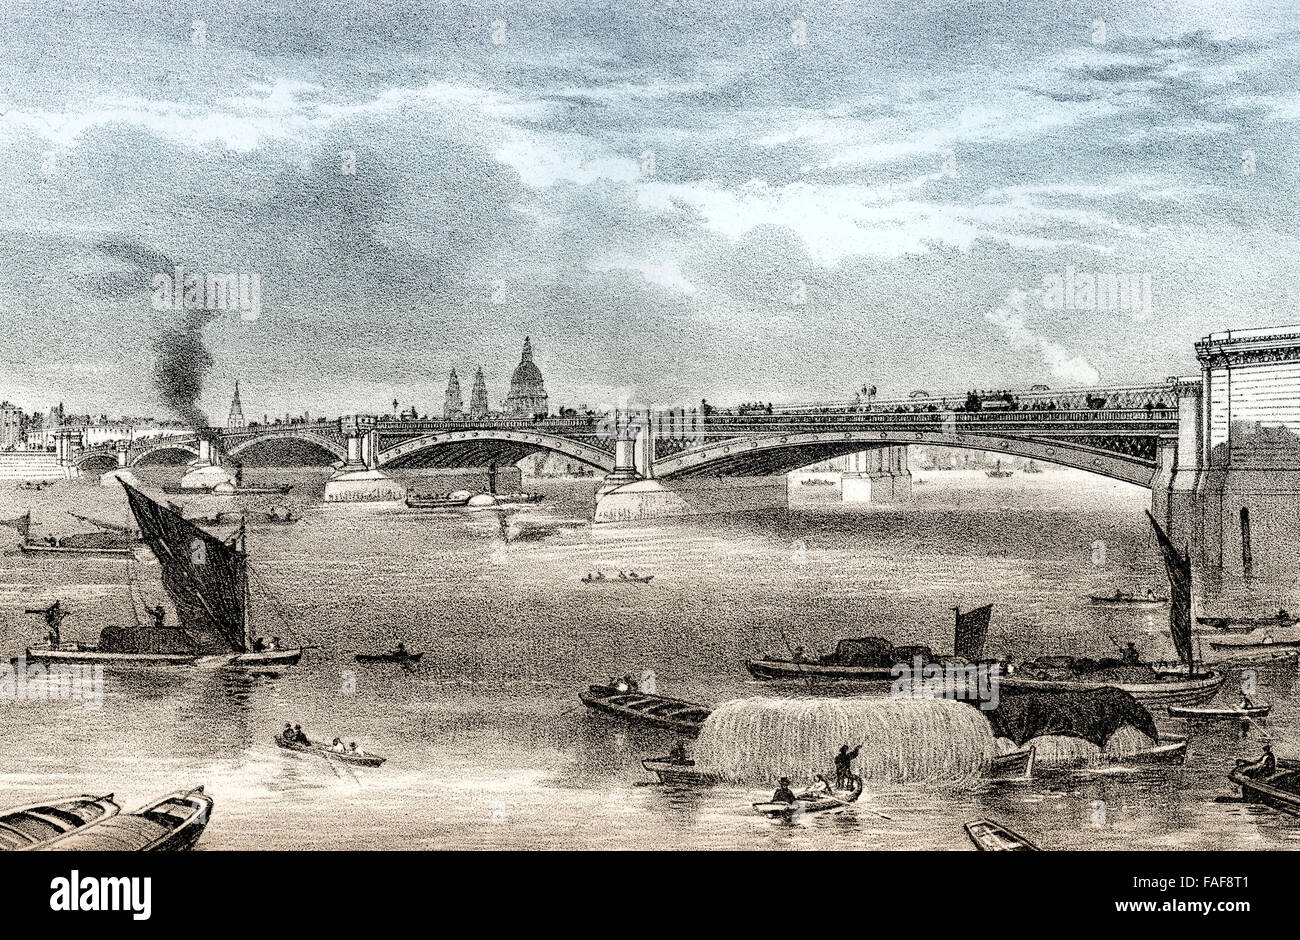 Blackfriars Bridge, a road and foot traffic bridge over the River Thames in London, 19th century, - Stock Image